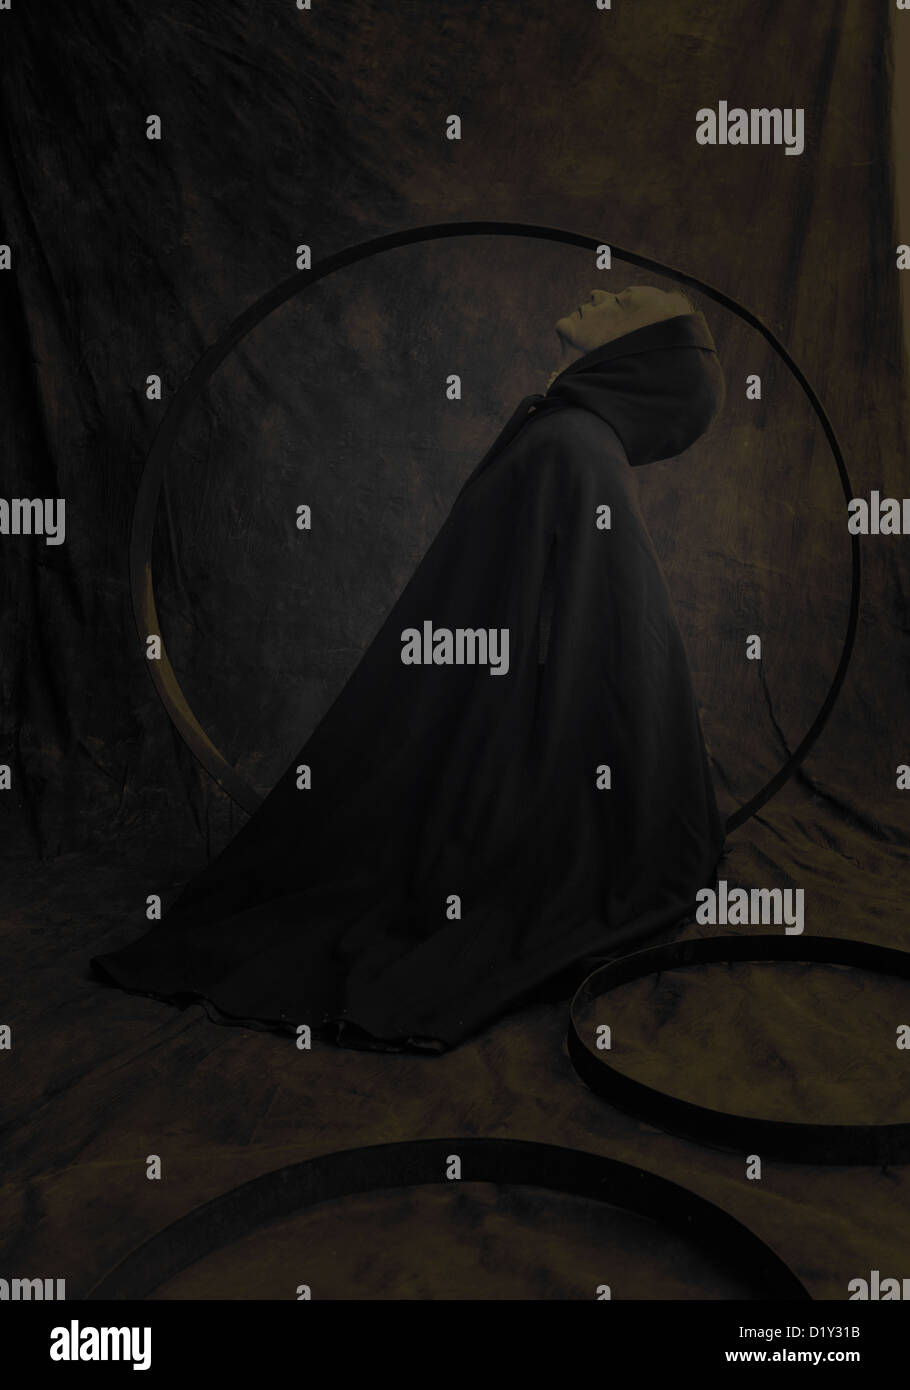 Calm cloaked female figure in circles and darkness. - Stock Image